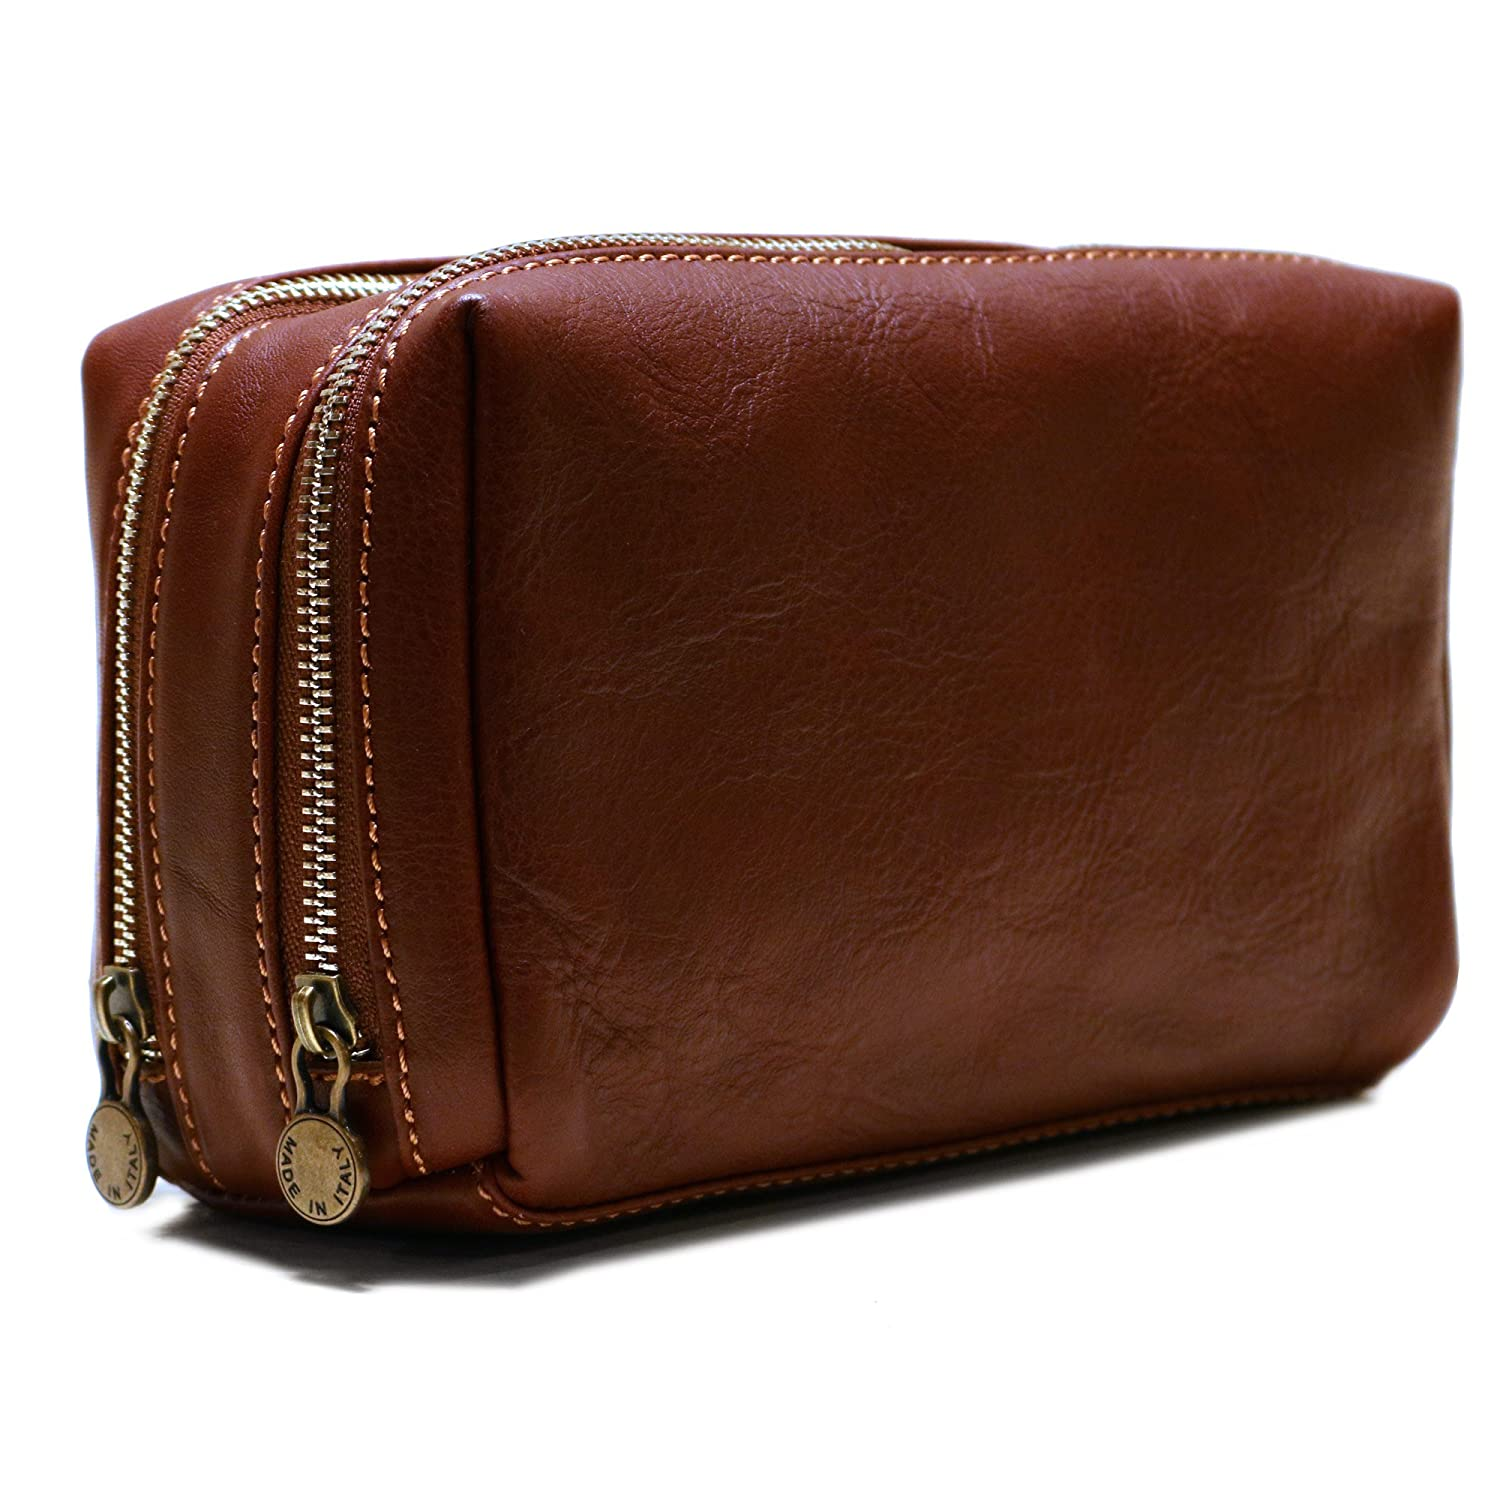 Siena Leather Travel Dopp Kit Toiletry Bag in Brown